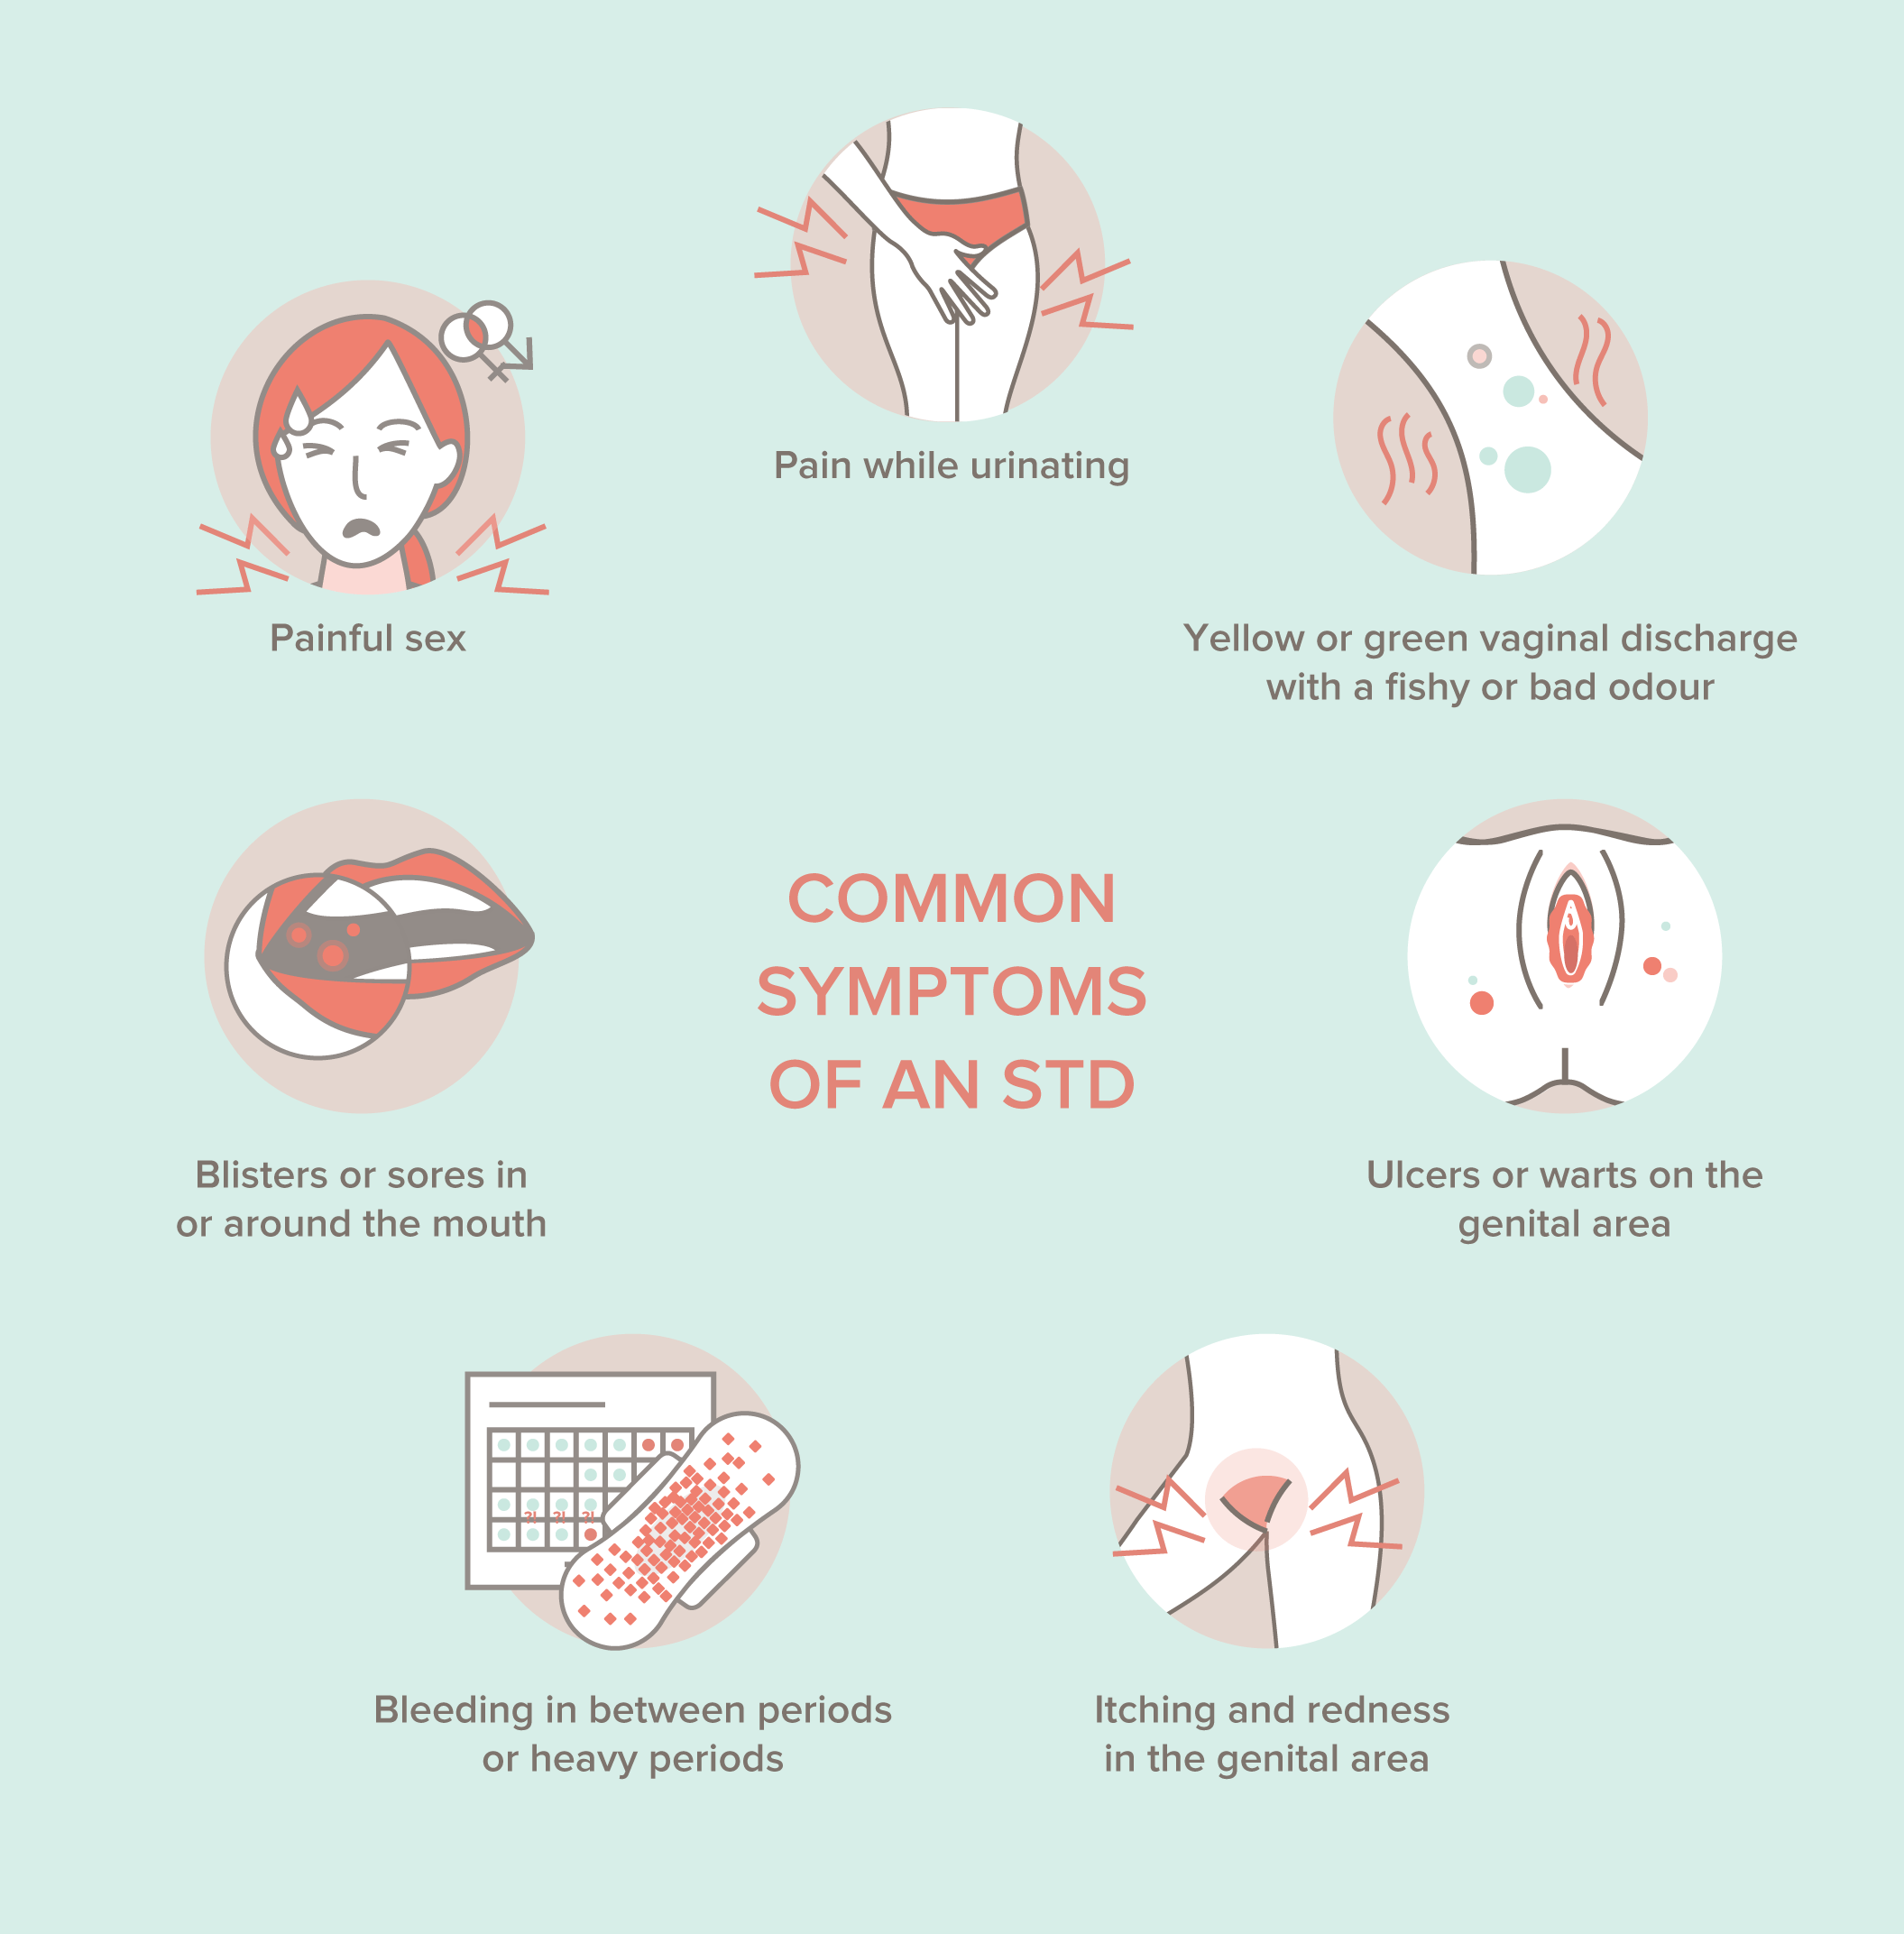 Common Symptoms of an Sexually Transmitted Diseases